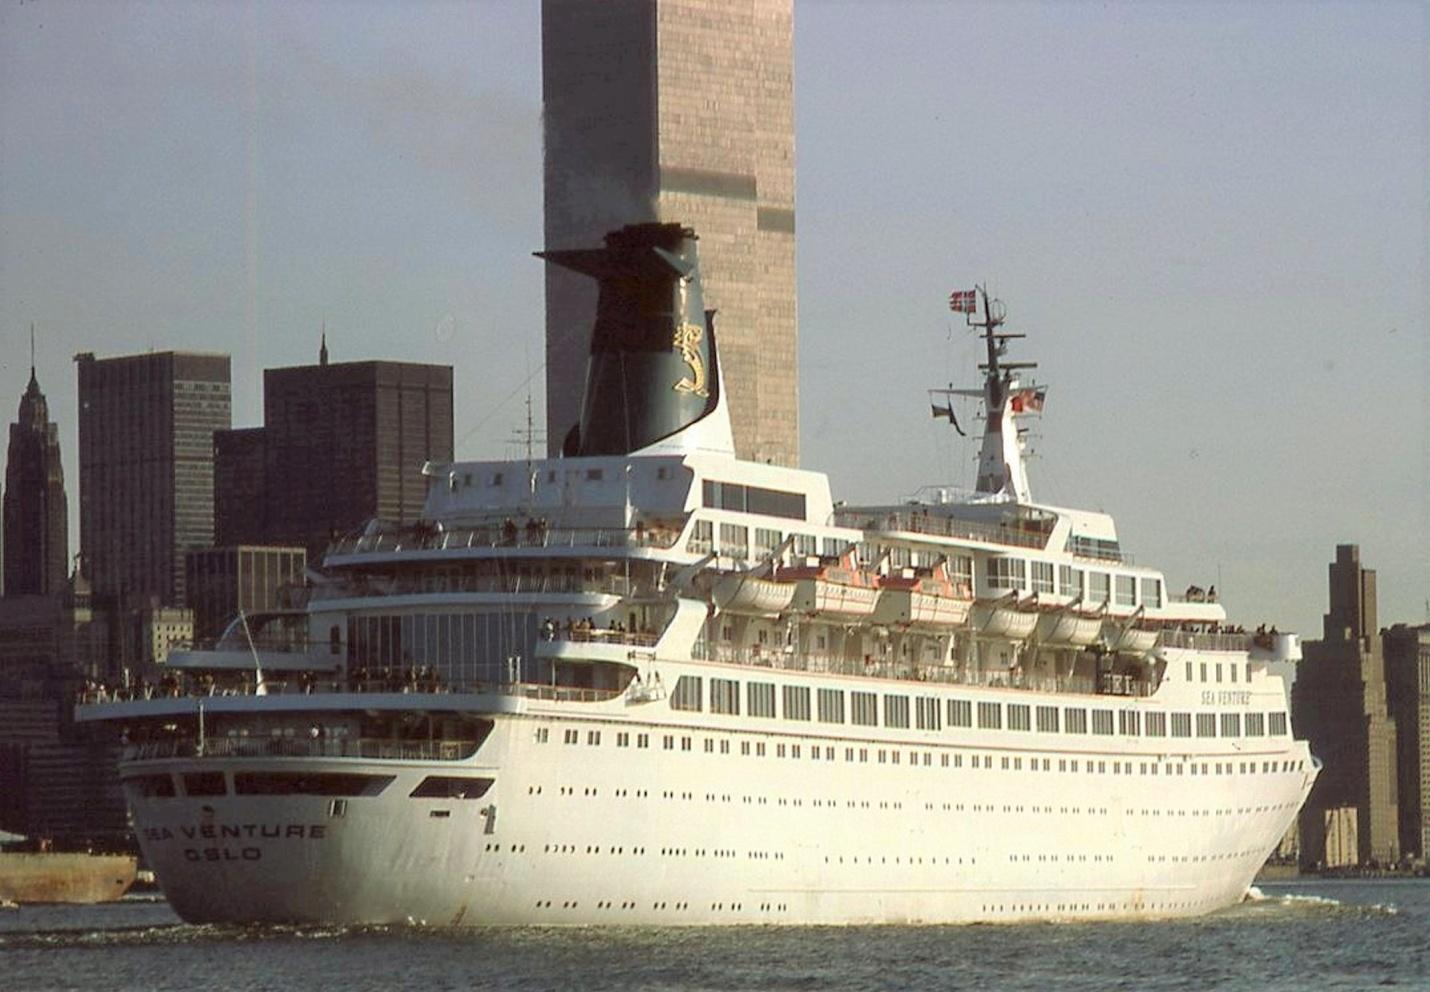 D:\Bill\Pictures\New York Liners\210.jpg